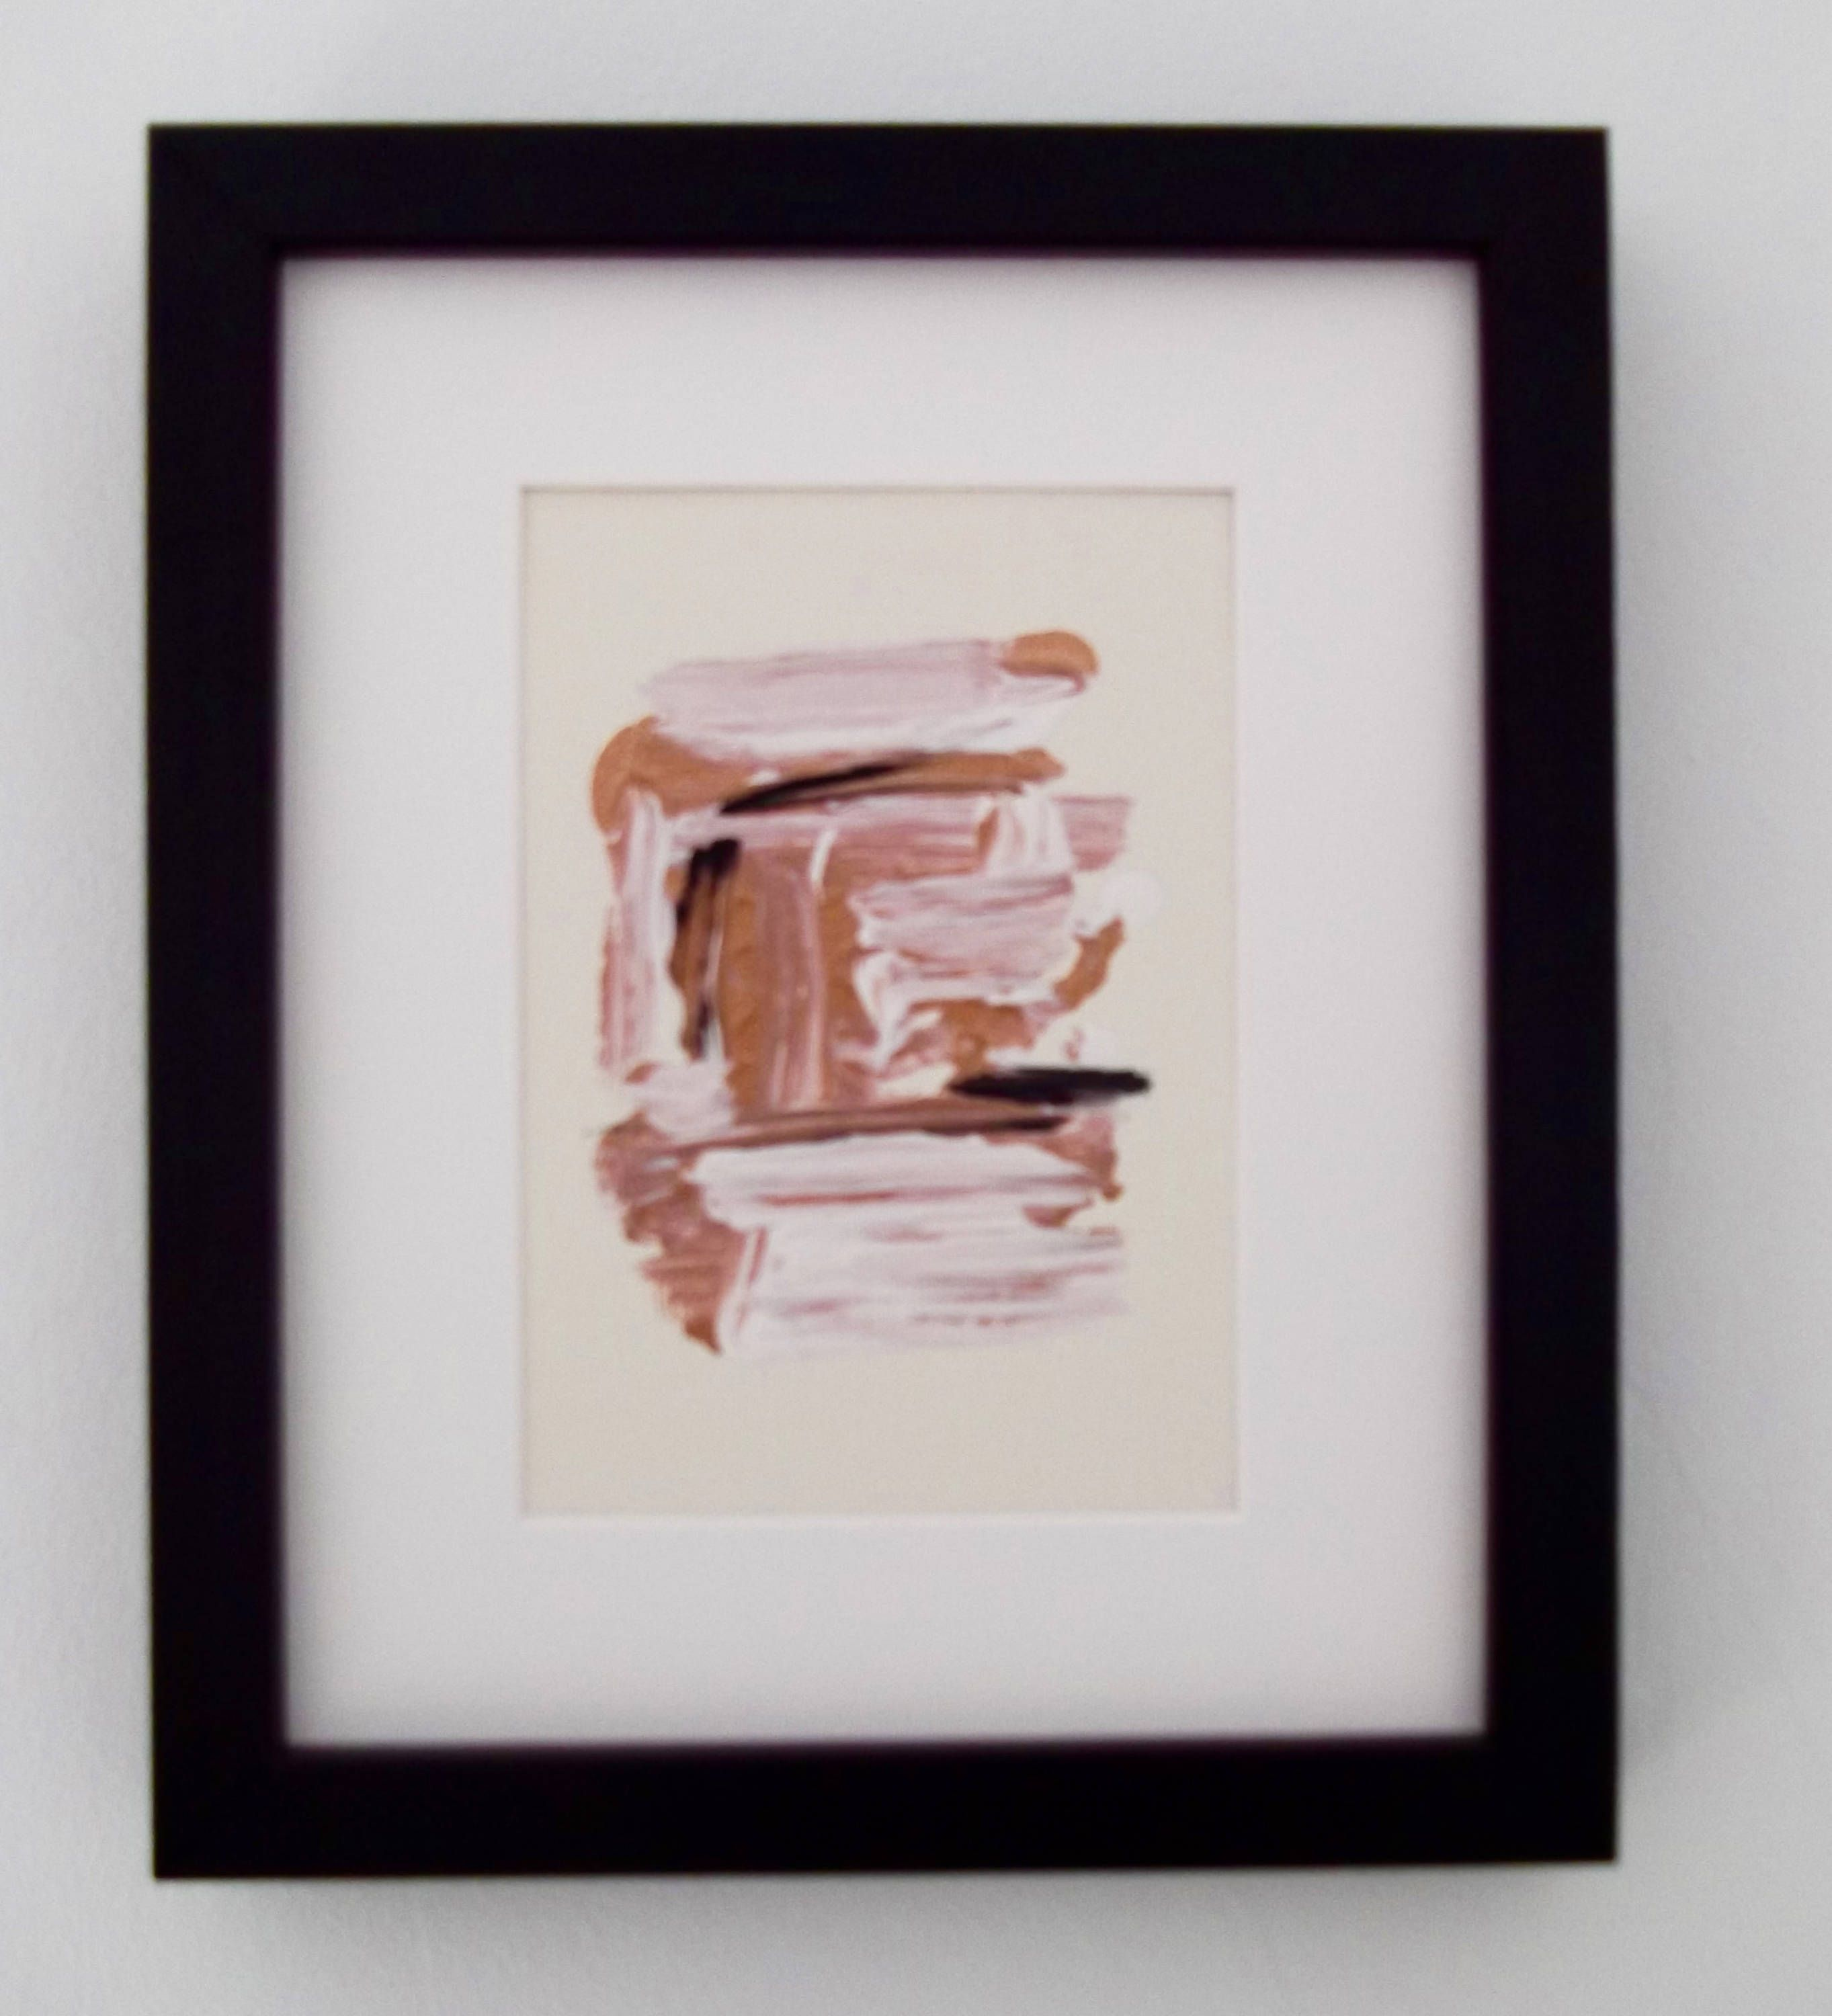 Original Abstract Framed Painting Ecru,Copper,White No3, Framed Paintings, Copper